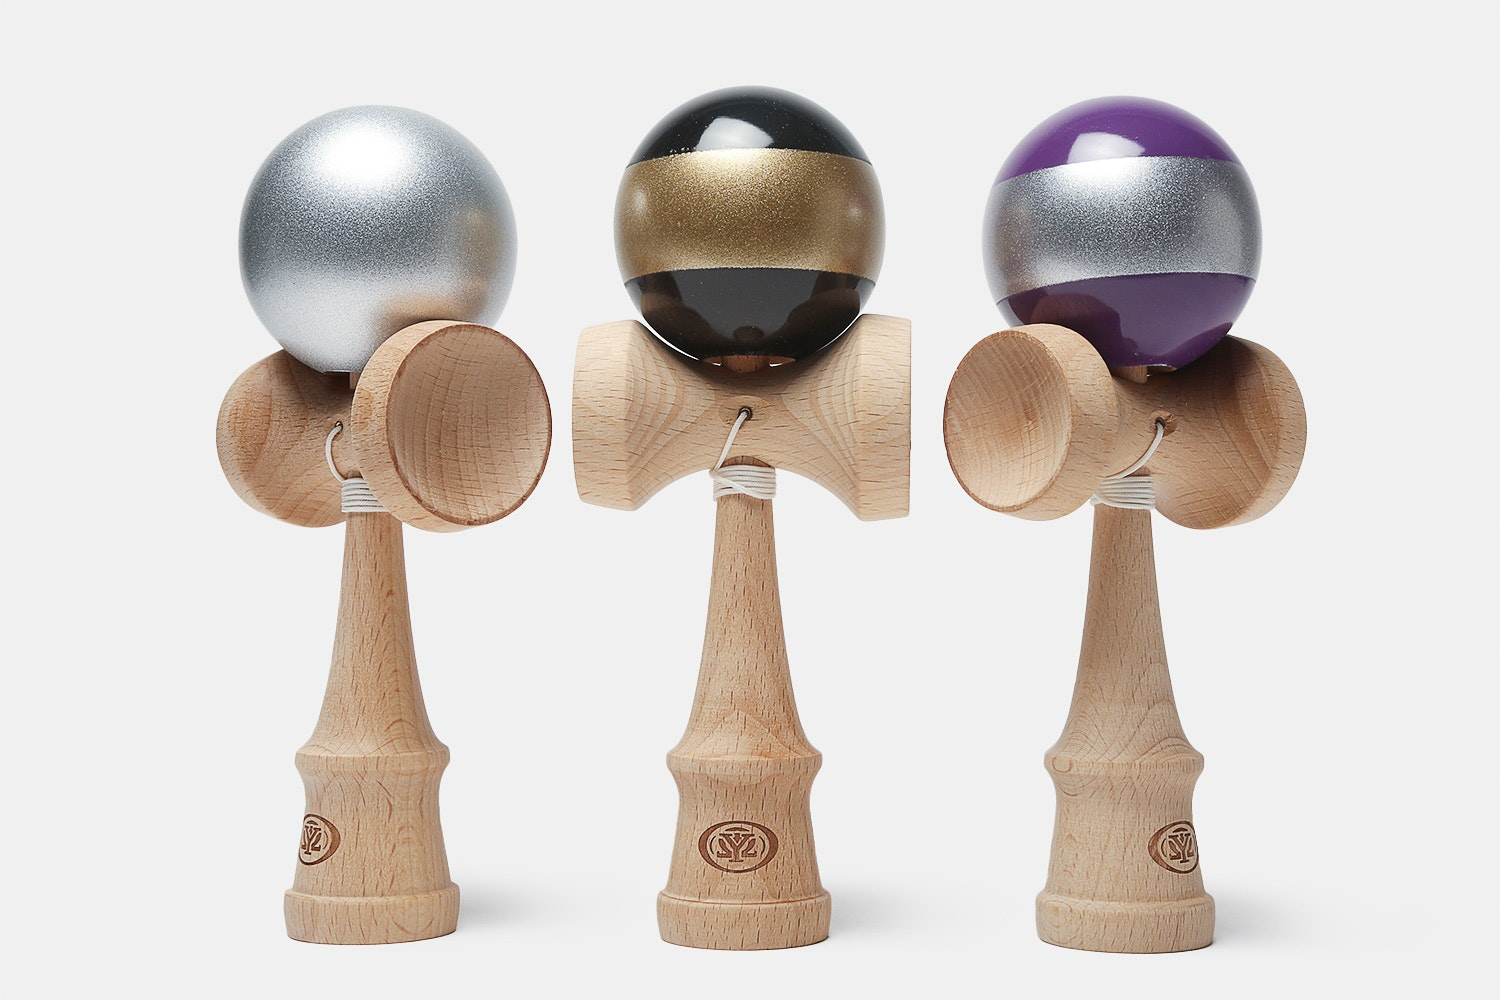 Yomega Kendama Pro Metallic & Striped (3-Pack)